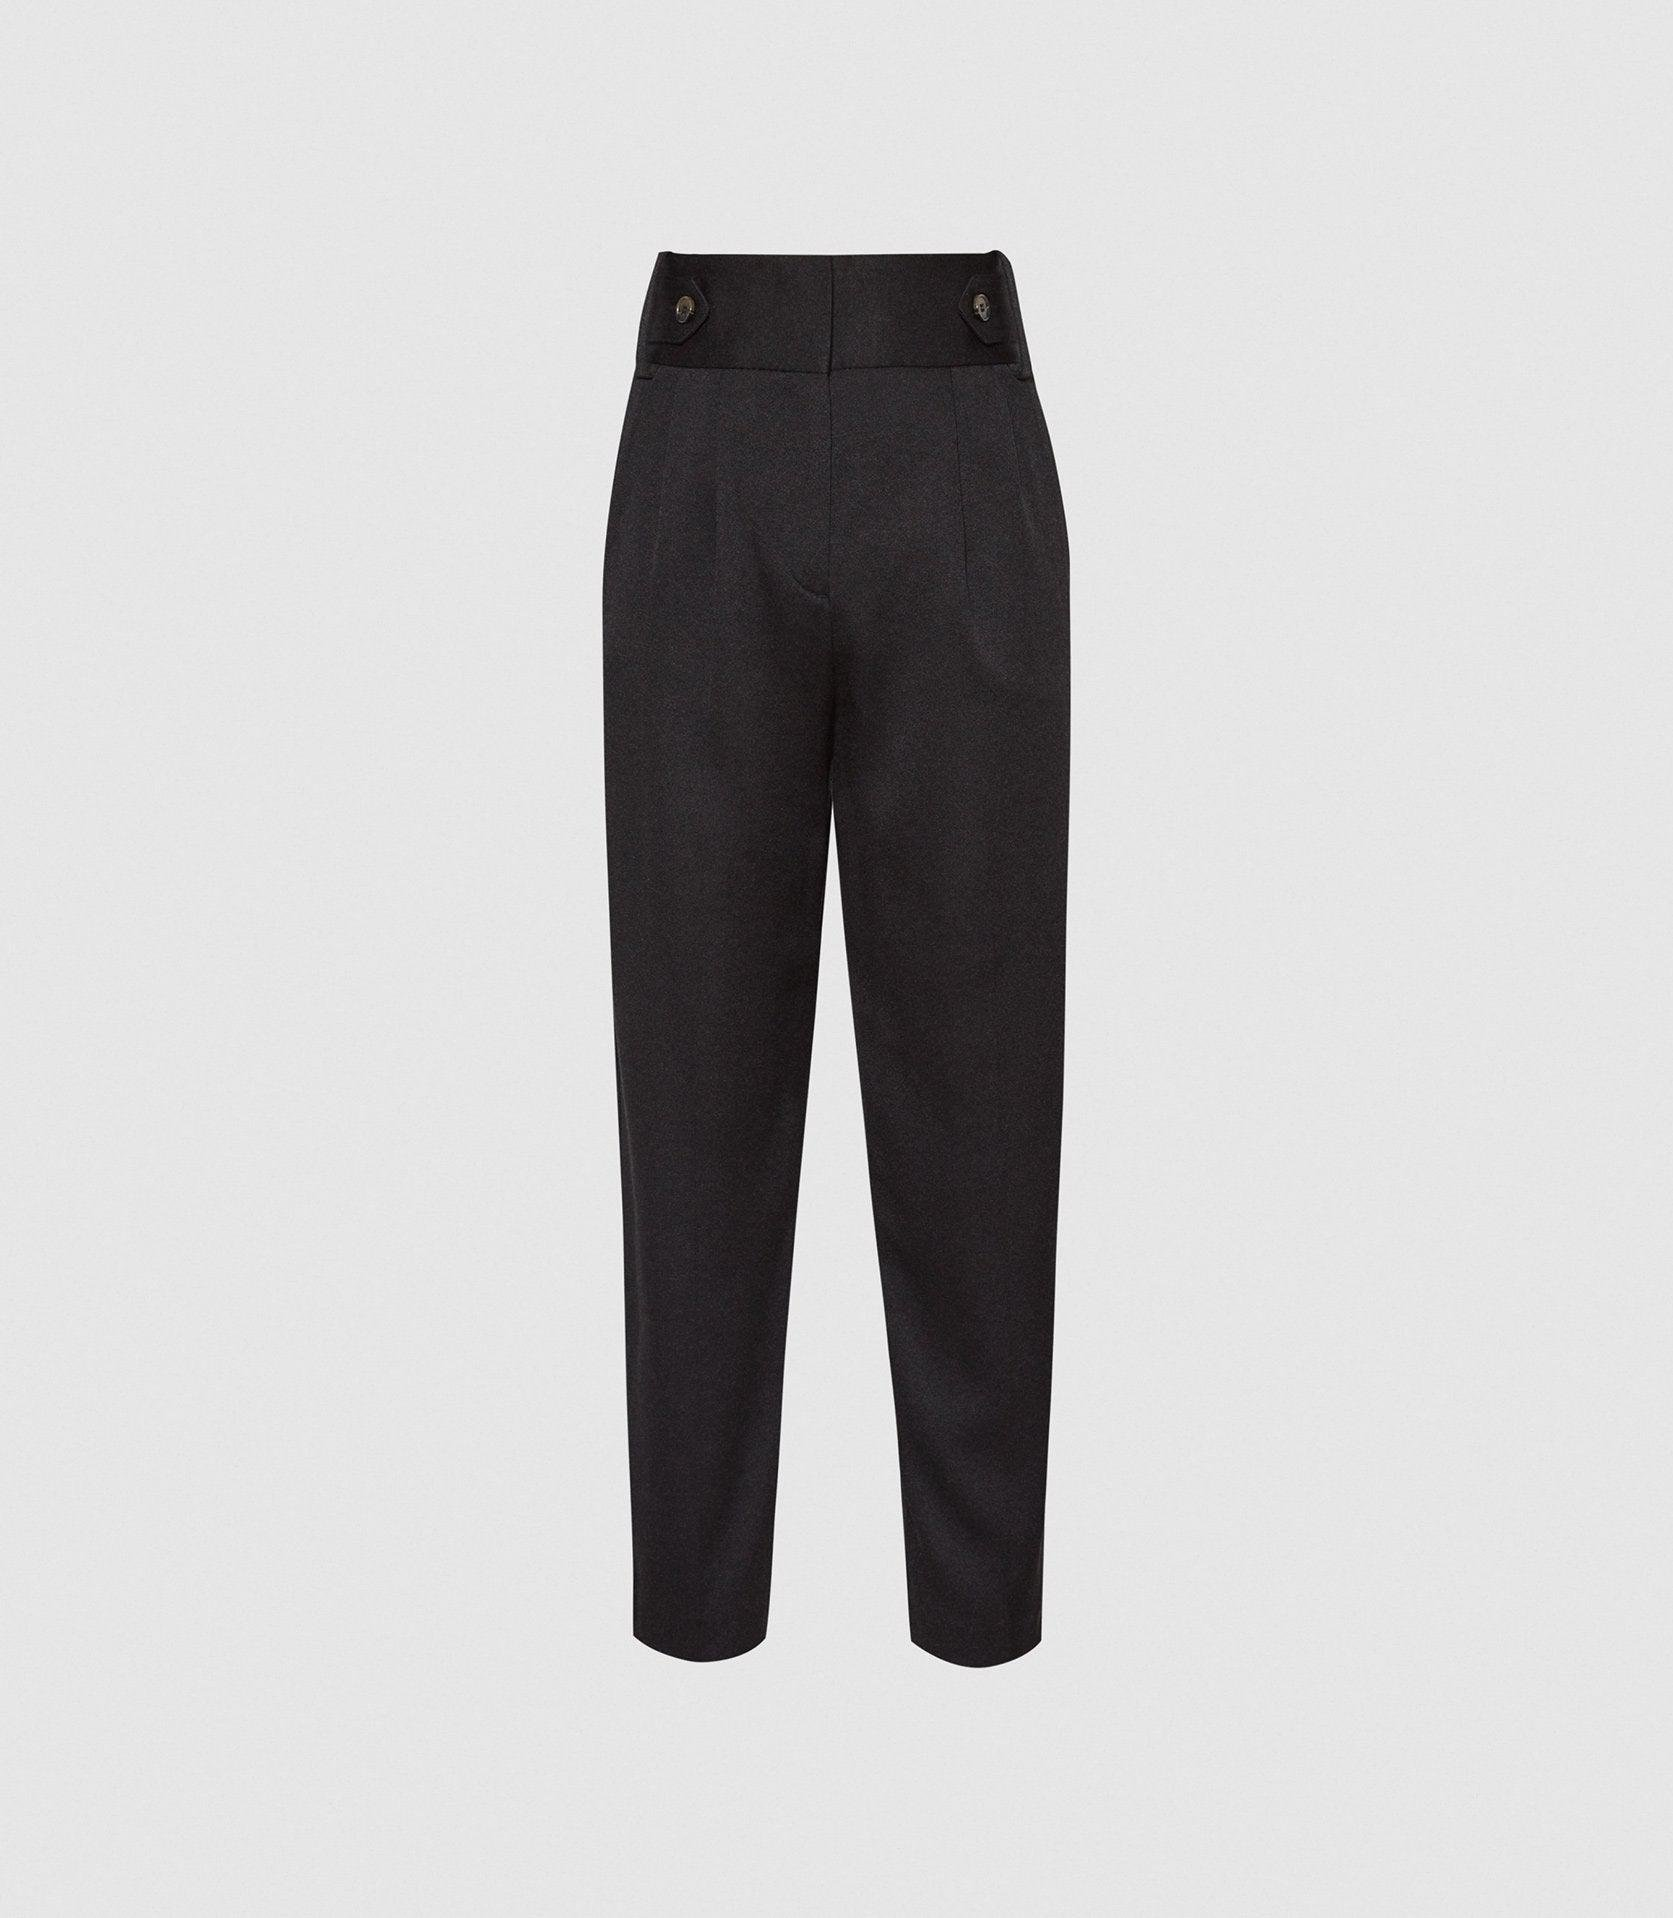 STANTON - CROPPED TAPERED PANTS 3